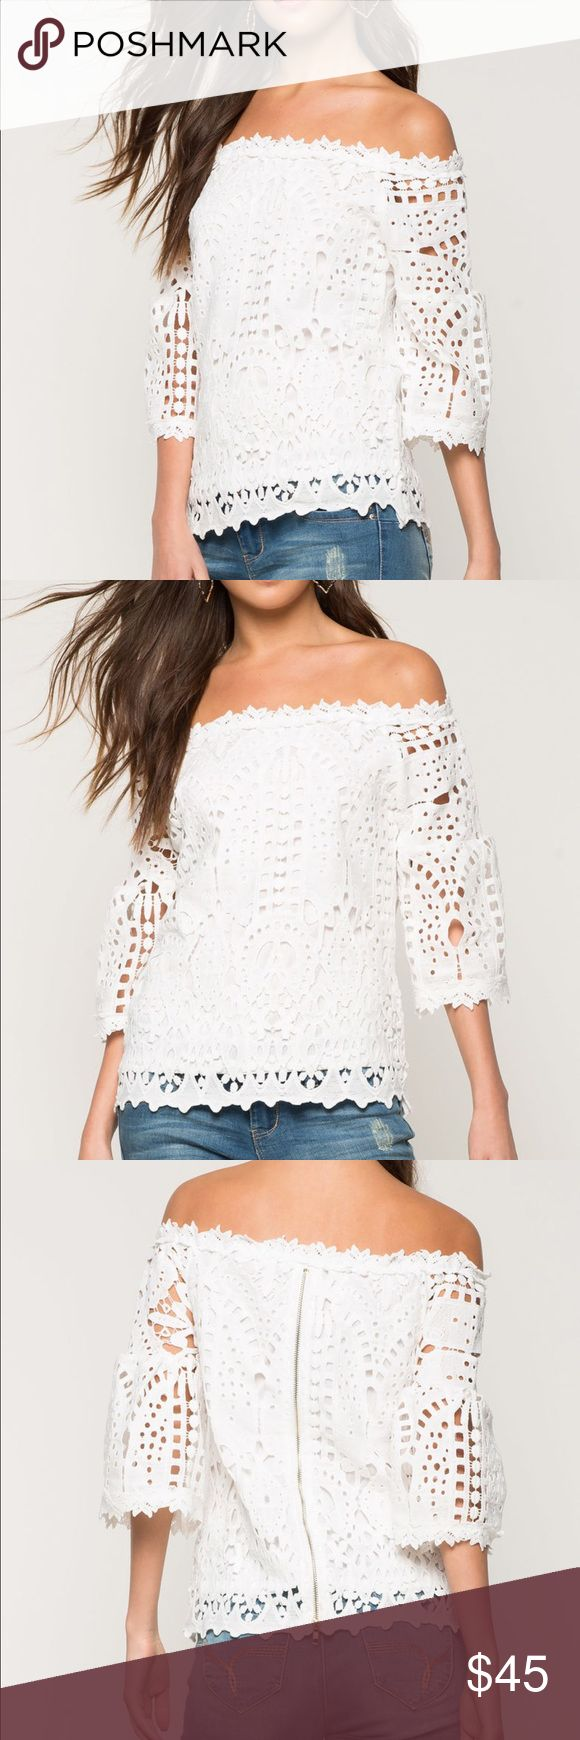 White crochet lace off shoulder bell sleeve top L A knit crochet top with scalloped trim, an elasticized off-the-shoulder neckline, and 3/4 bell sleeves. Partially lined. Finished seams. Exposed back zipper. The flared trumpet sleeves and quality crochet on bright white make this Blouse the top for summer. Similar in style and quality to for love or lemons or lovers and friends, this piece is a statement. Pair with jeans or cut offs for festival season, or dress it up with black pants and…